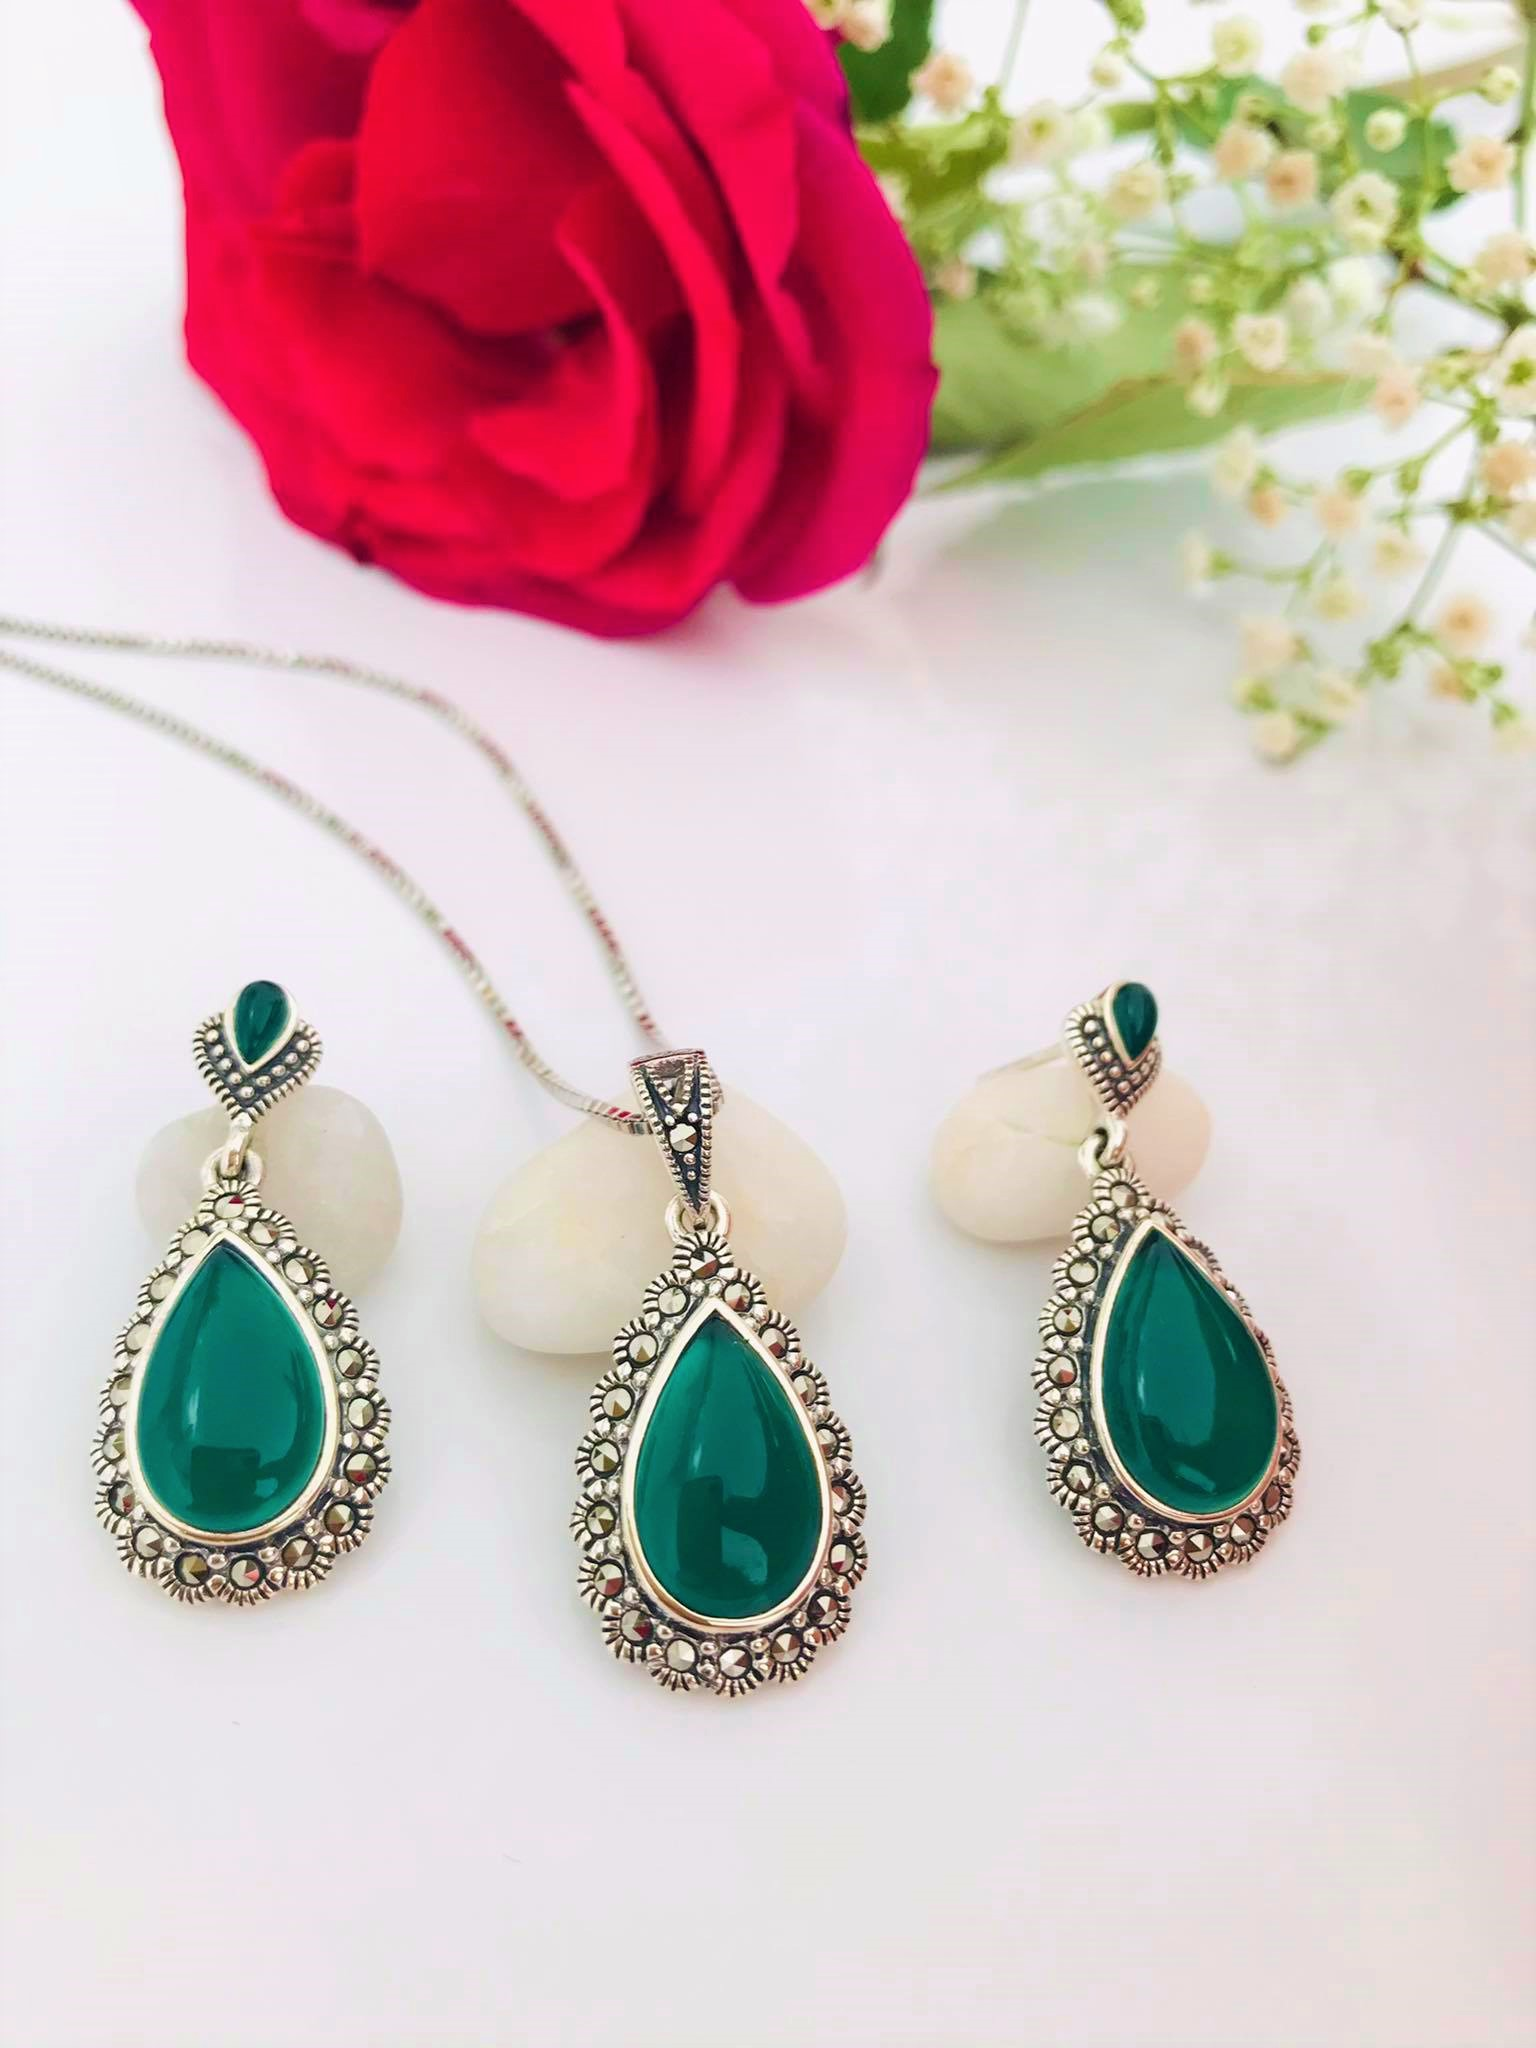 Lovely Teardrop Green Onyx and Marcasite Sterling Silver SET Image